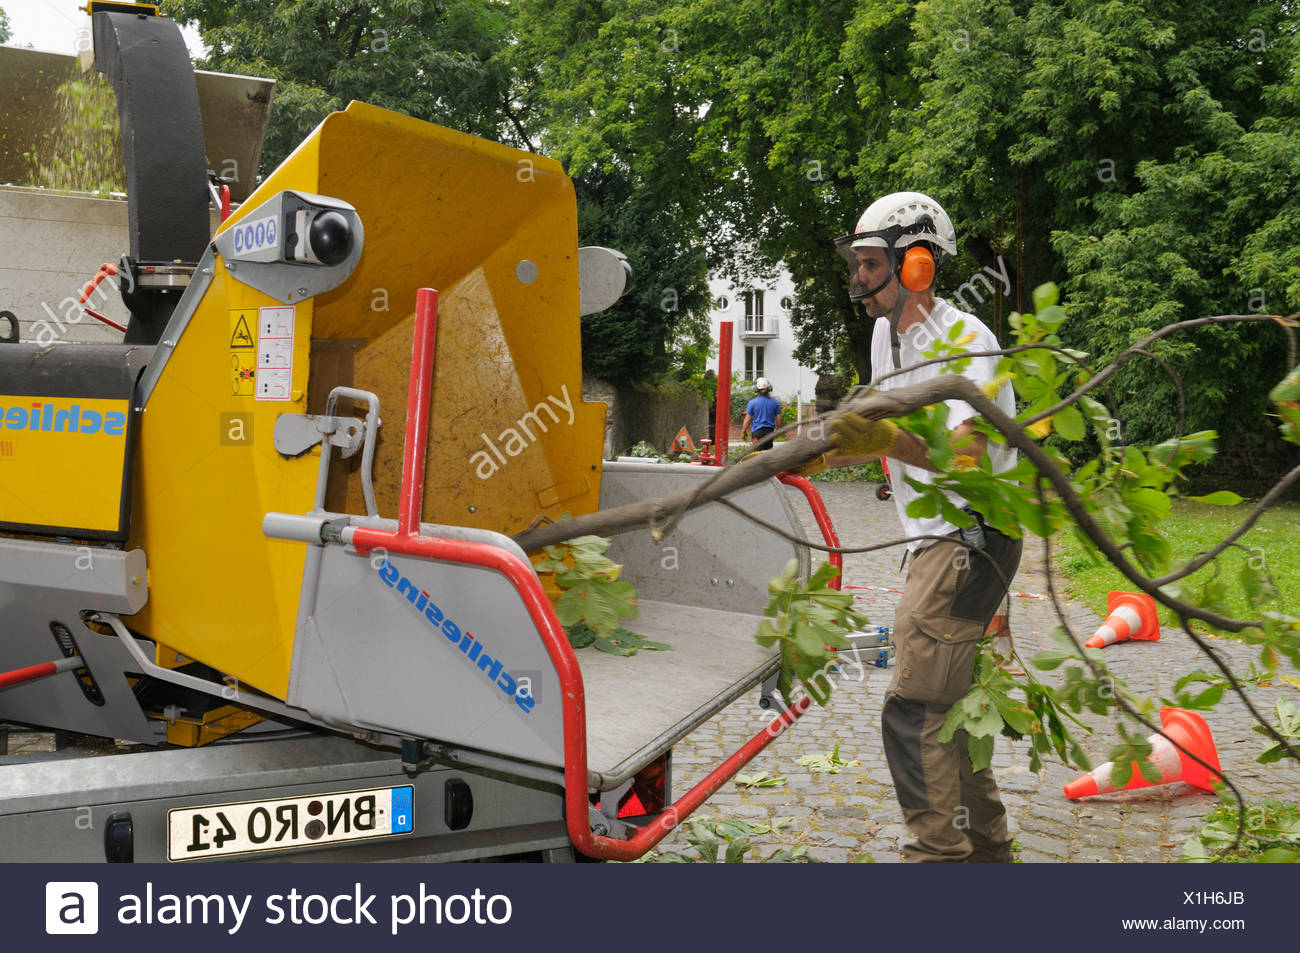 Arborist wearing safety clothing pushing a branch into a shredder - Stock Image